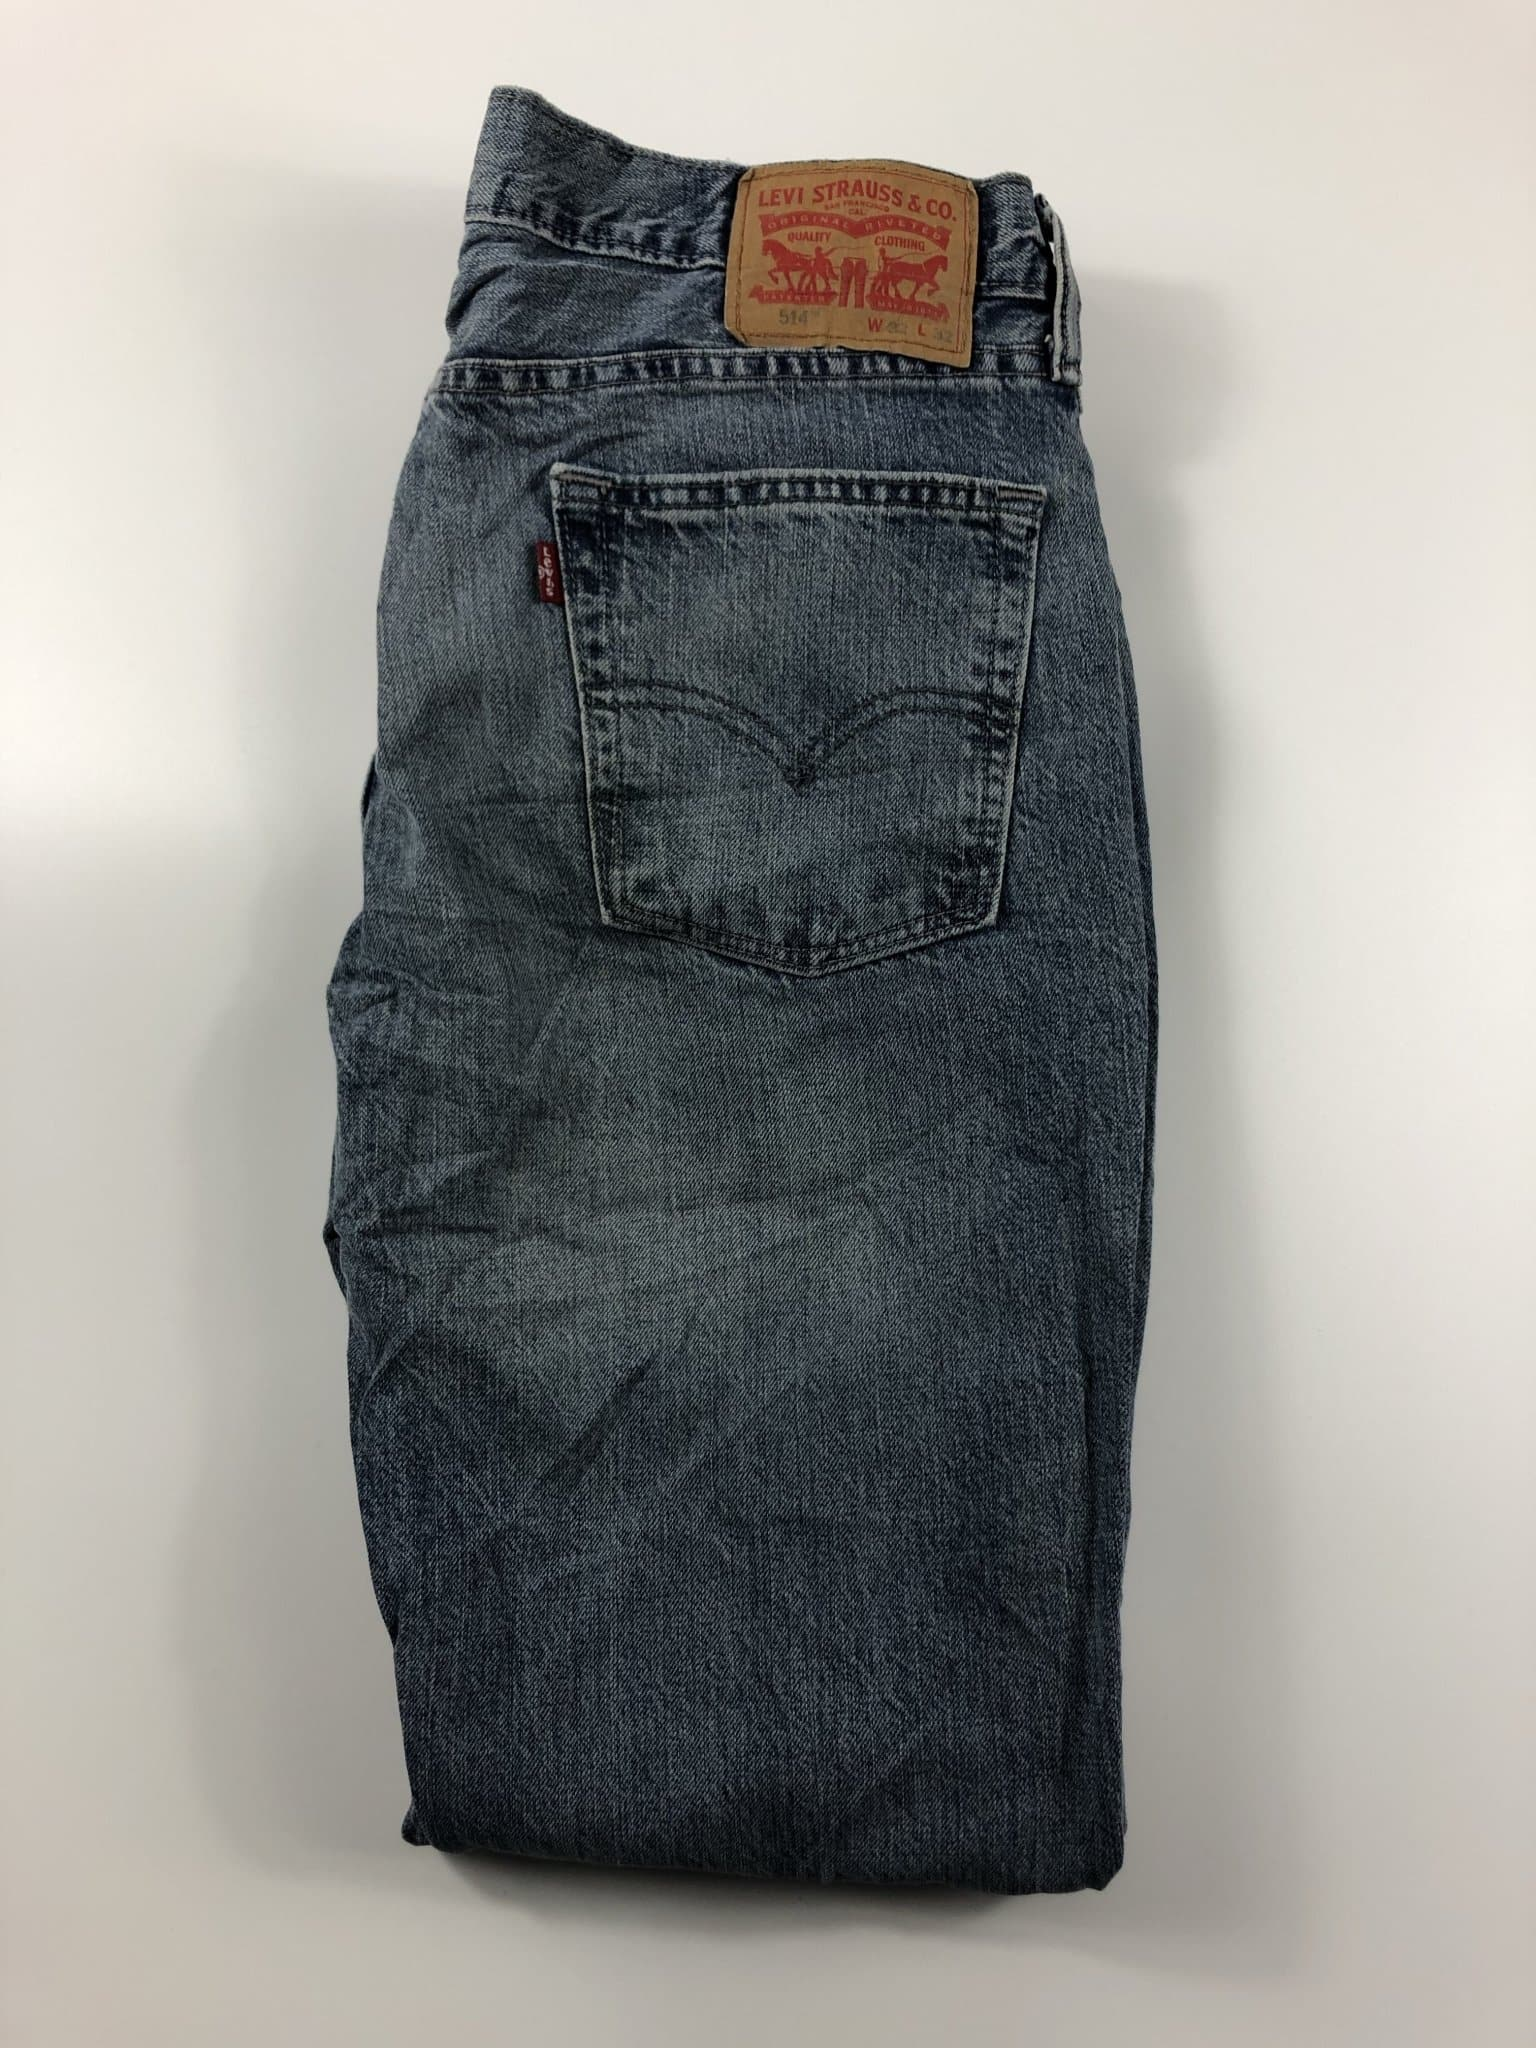 Vintage Levi's Classic 514 Jeans W32 L32 (K5) - Discounted Deals UK